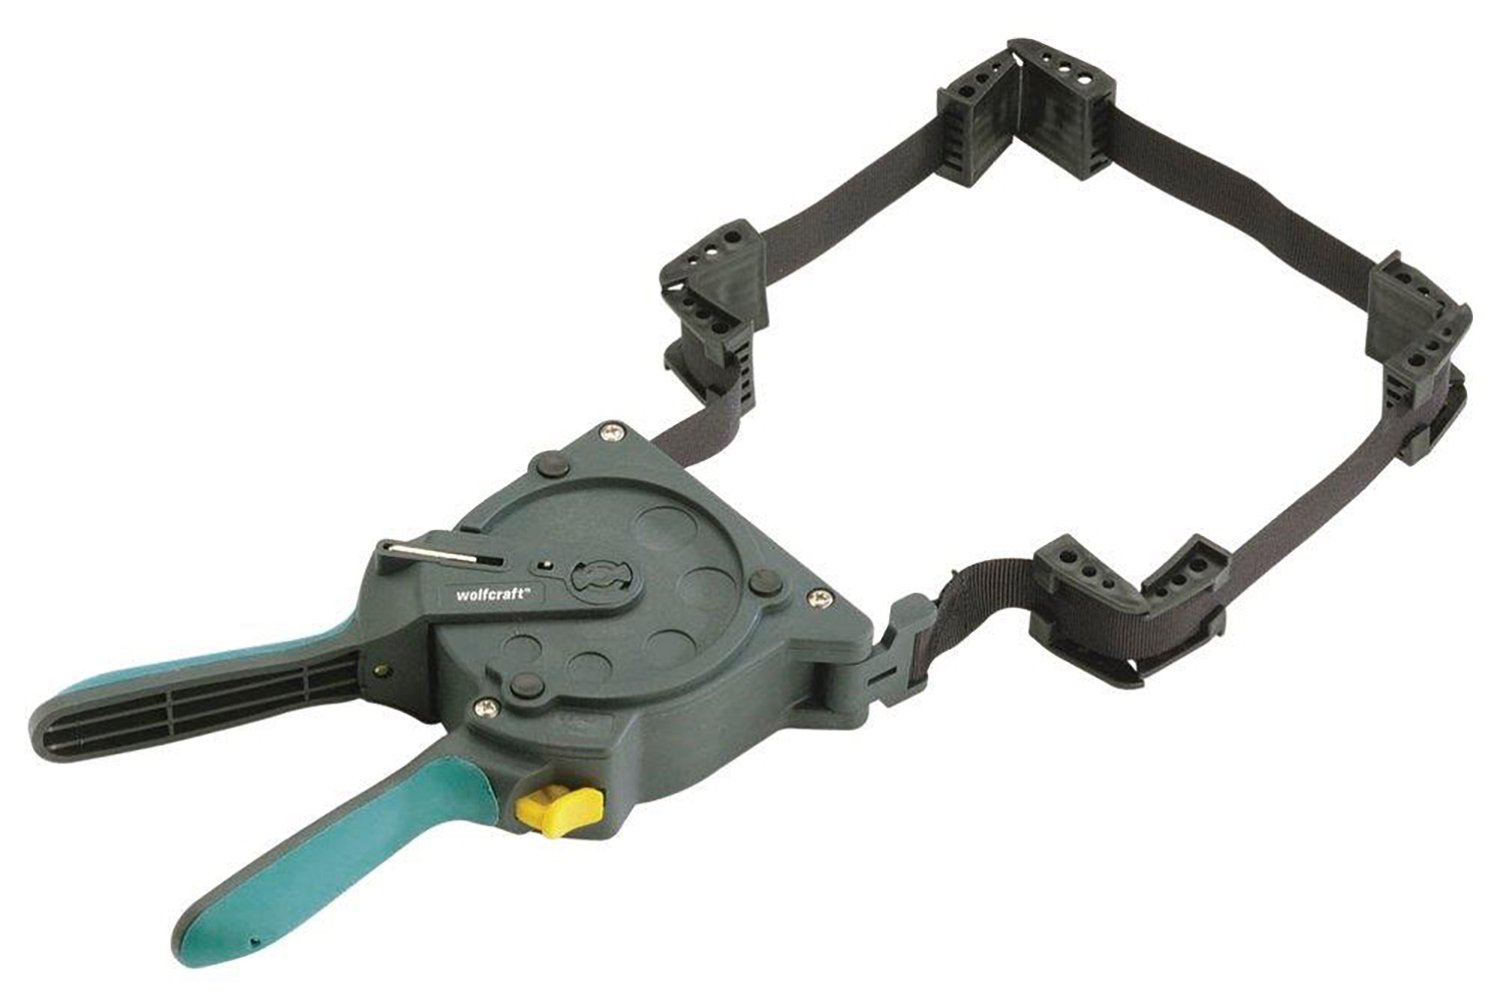 wolfcraft 3681404 One-Hand Ratcheting Band Clamp, 16in.